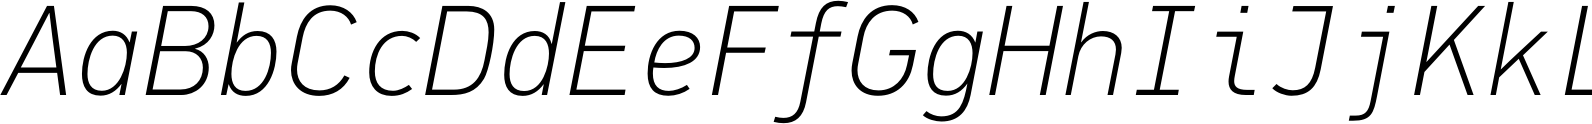 PFDinMono ThinItalic